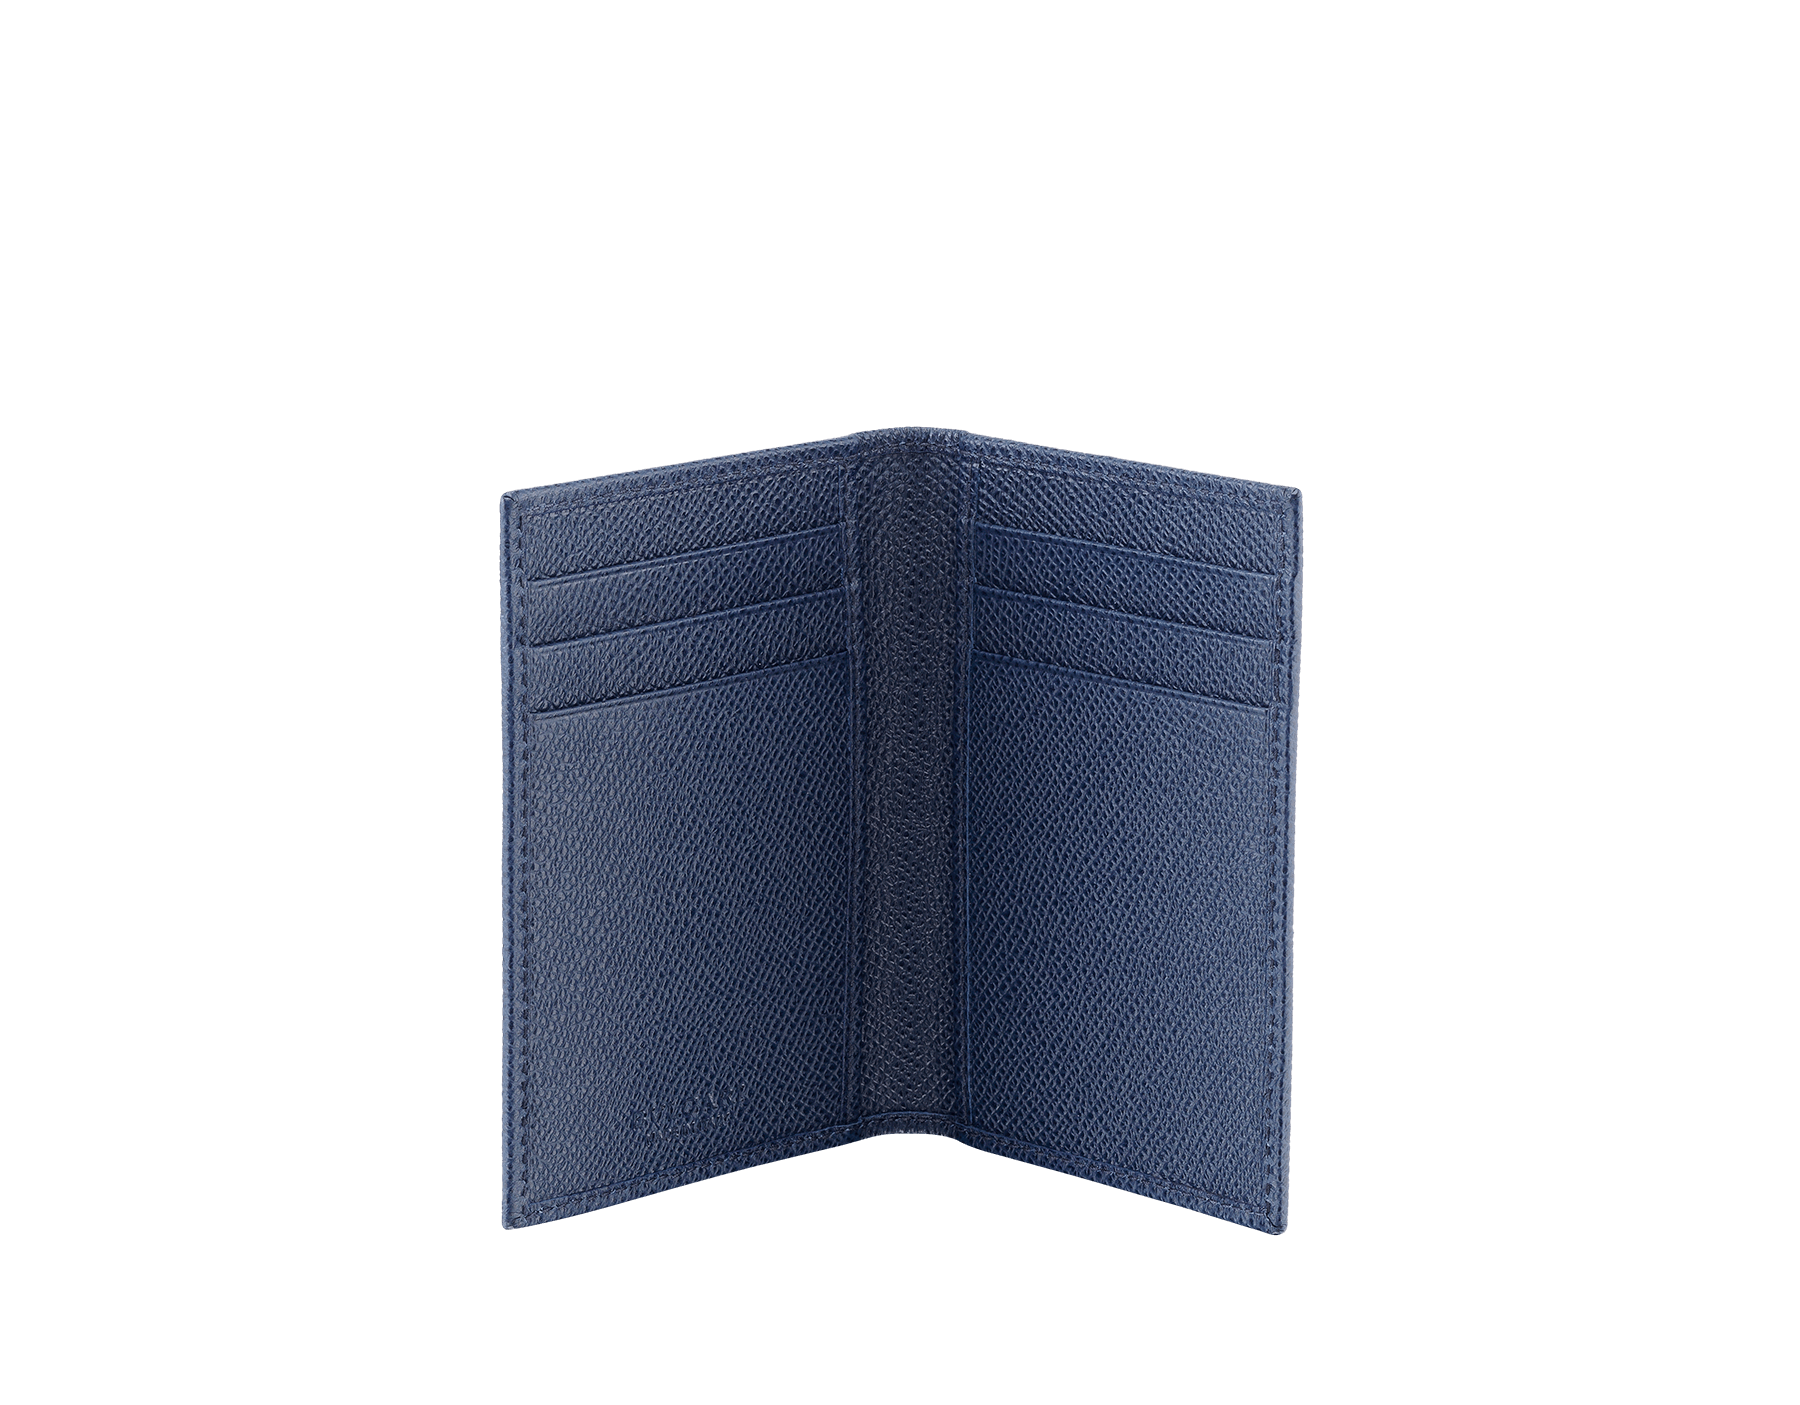 Folded credit card holder in denim sapphire calf leather with brass palladium plated Bulgari Bulgari motif. Six credit card slots and two compartments. Also available in other colours. 8 x 11,5 cm. - 3.1 x 4.5 280294 image 2